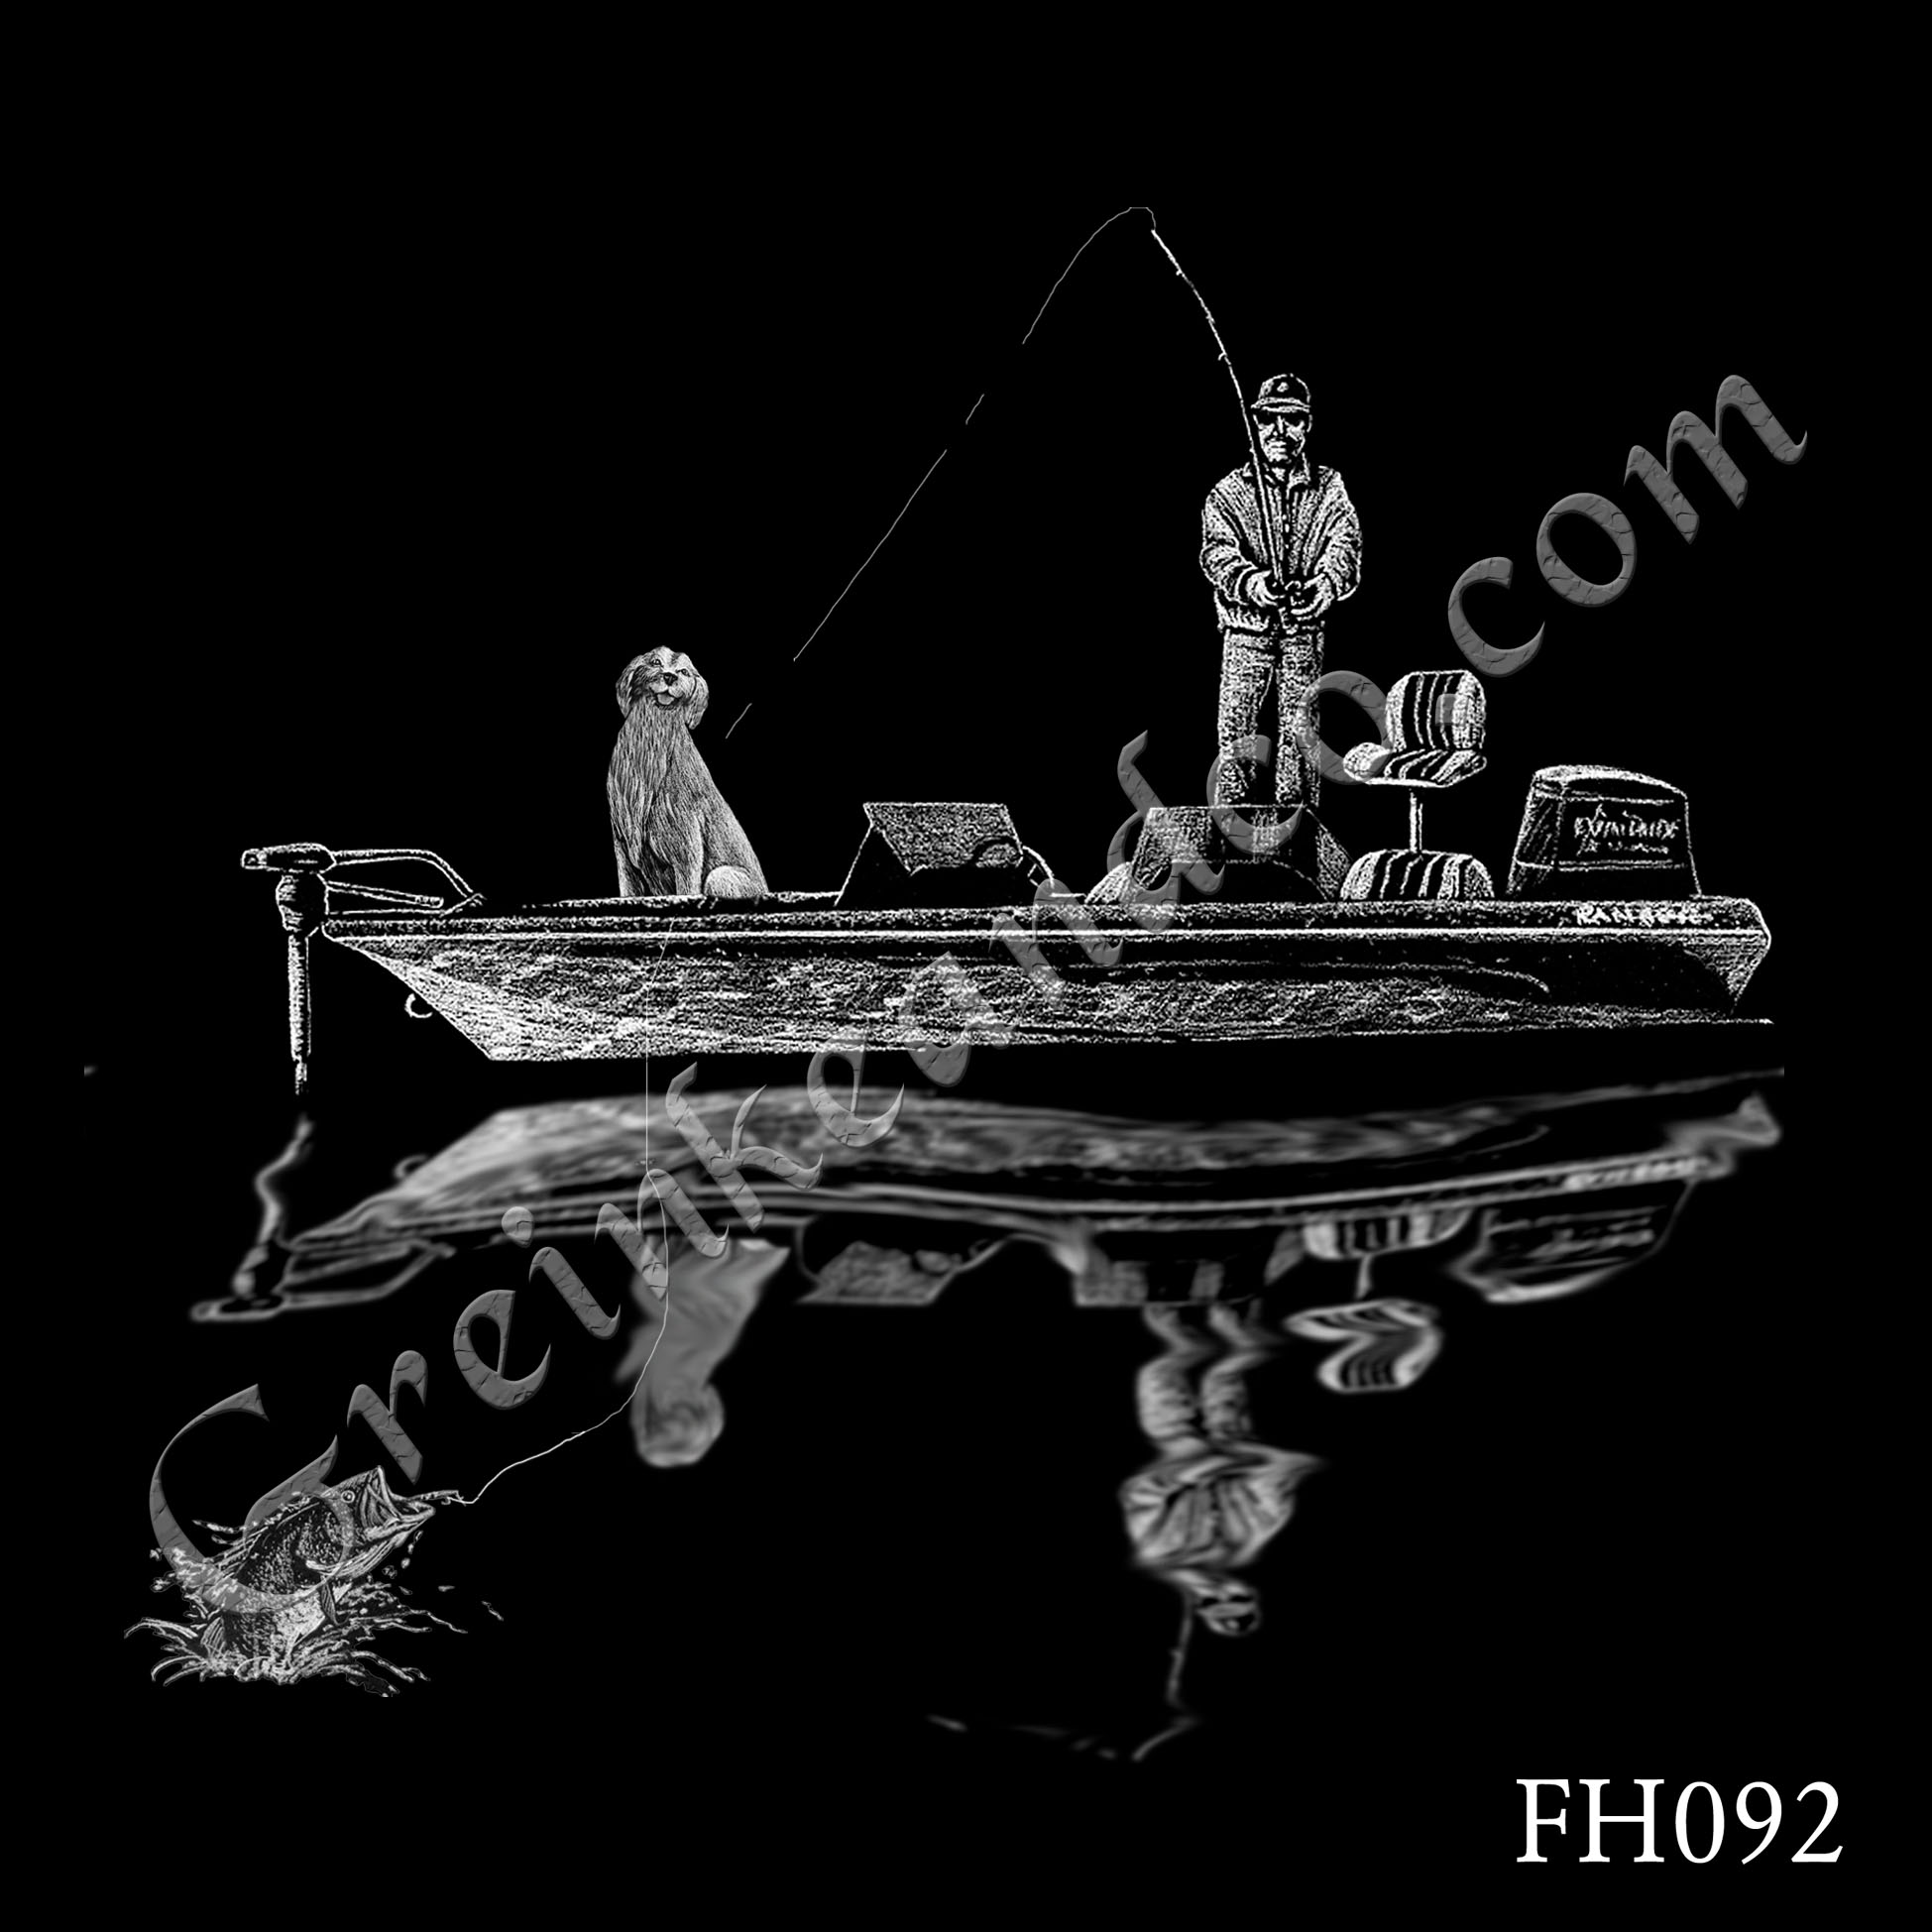 FH092 - Fisherman Boat Dog Fish